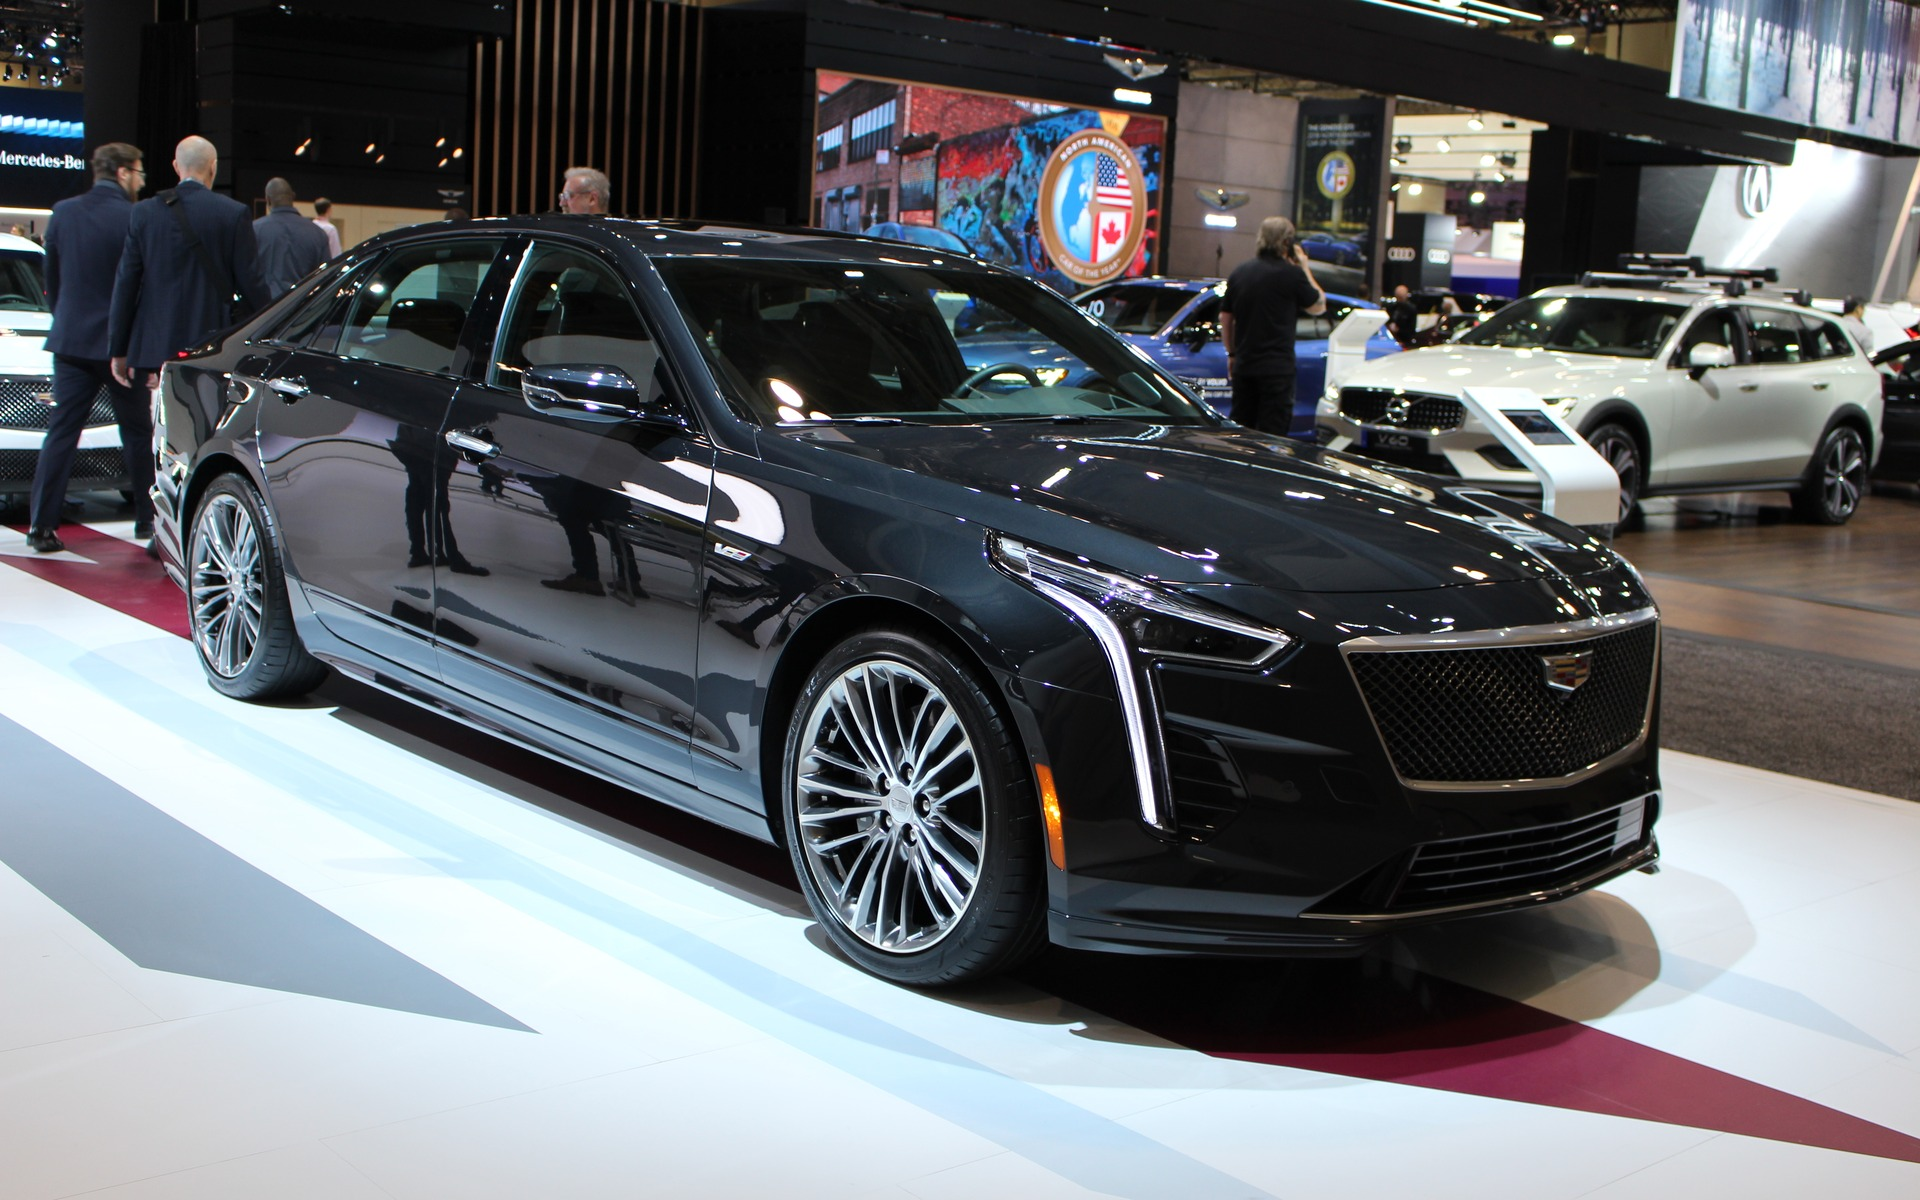 2019 Cadillac Ct6 V And 2020 Cadillac Xt6 Unveiled In Toronto The